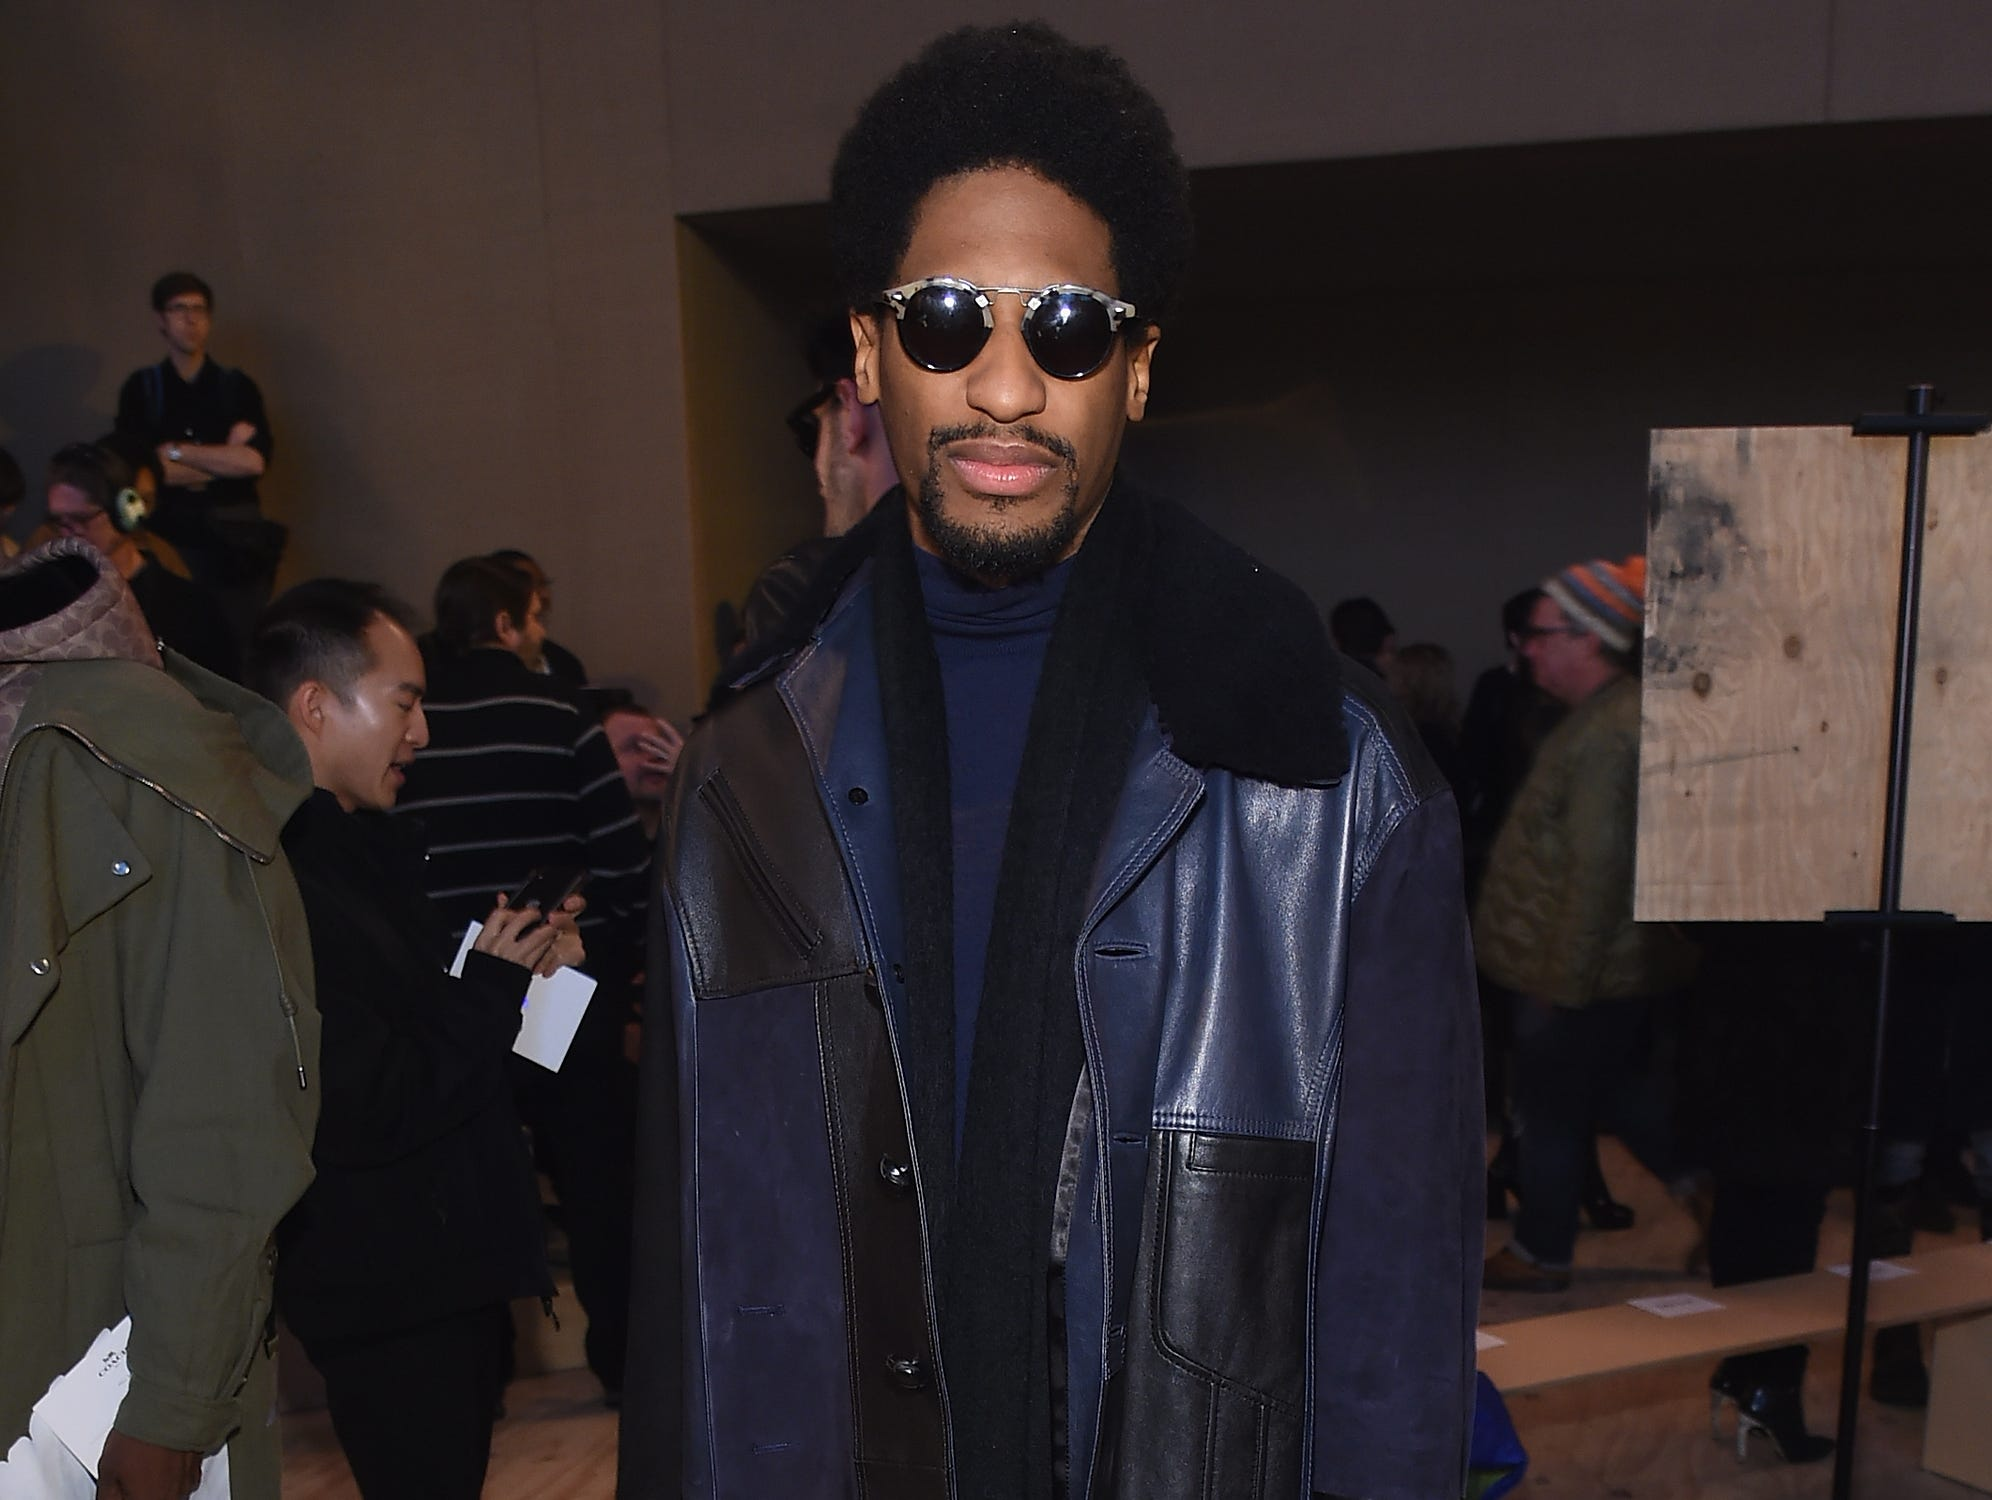 NEW YORK, NY - FEBRUARY 12:  Musician Jon Batiste attends Coach 1941 fashion show at the NYSE on February 2019 during New York Fashion Week on February 12, 2019 in New York City.  (Photo by Jamie McCarthy/Getty Images) ORG XMIT: 775290960 ORIG FILE ID: 1124280073